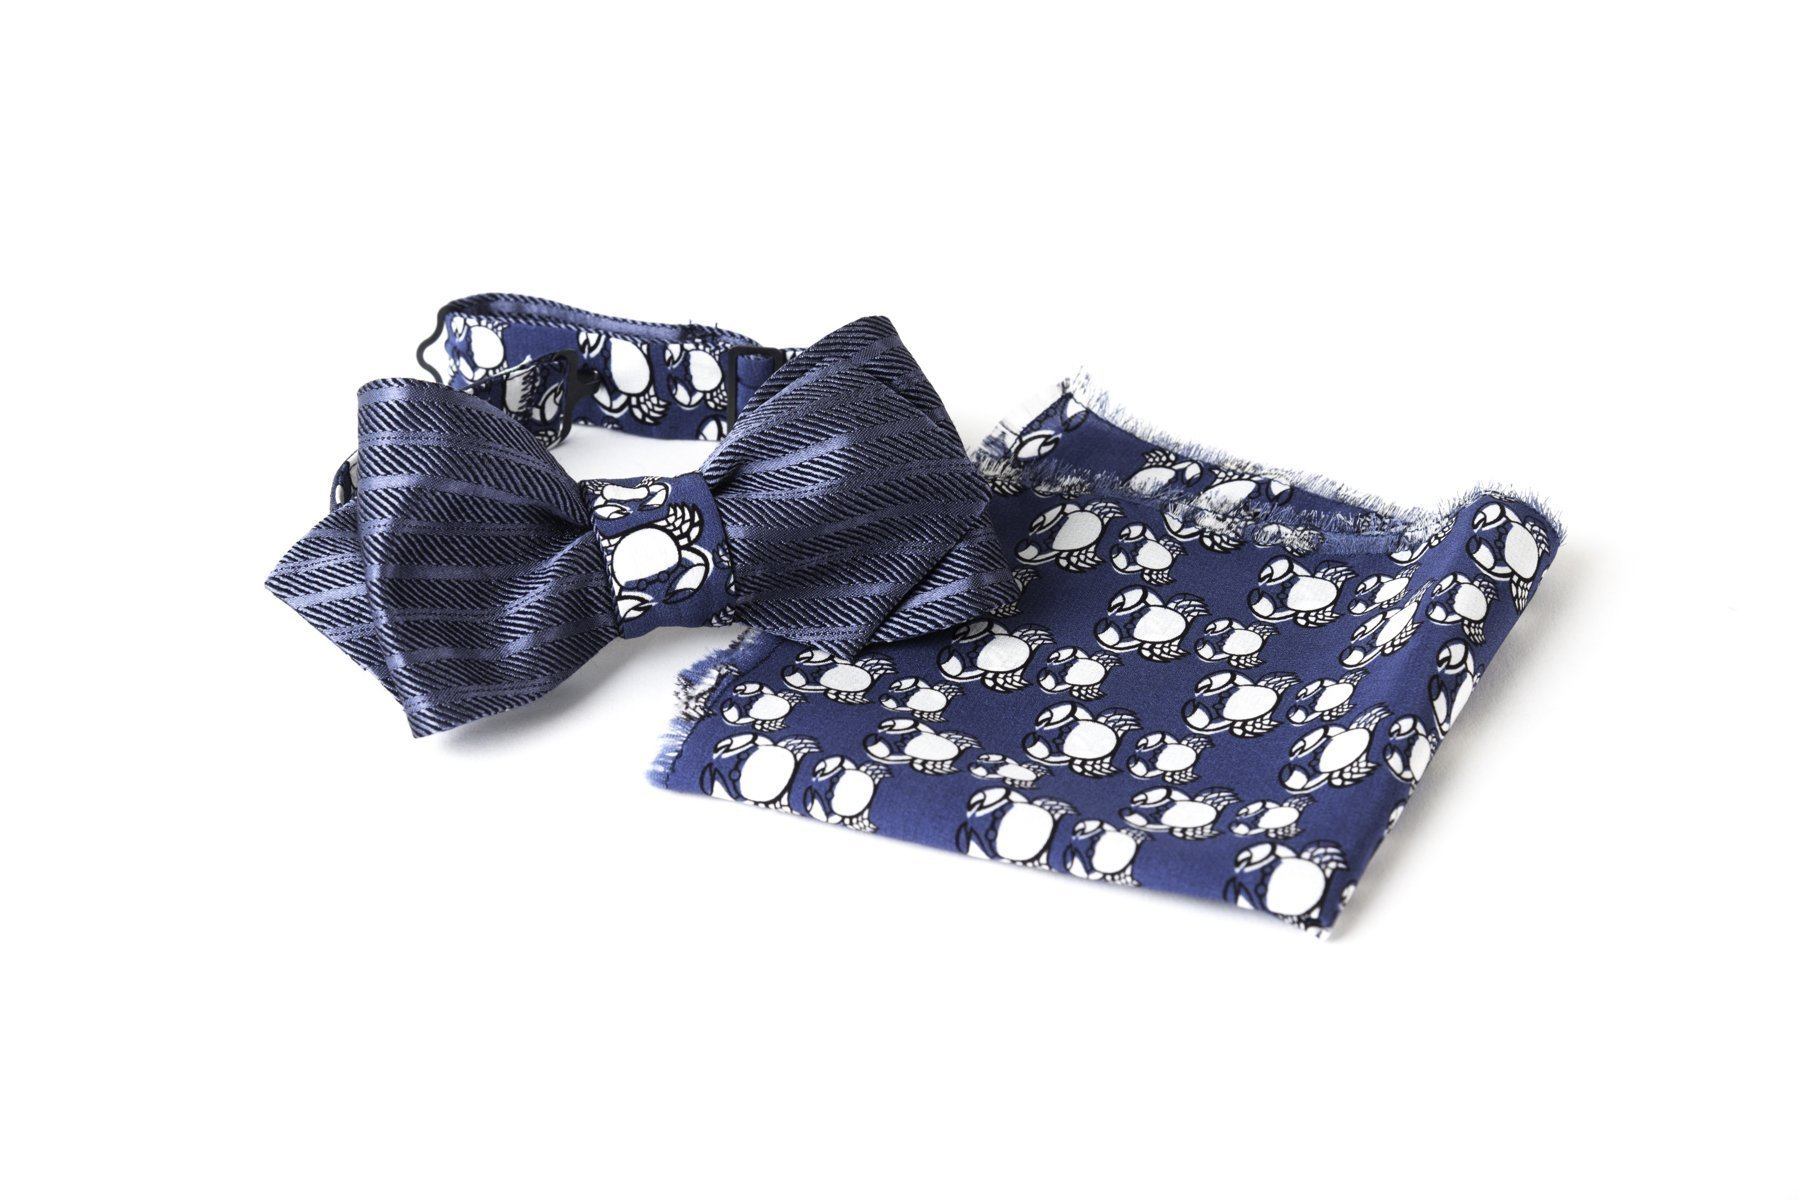 Bow Tie, Self Tie, Double Sided, Reversible, Pocket Square, Set, Men, Adjustable, Hook, Silk, Blue, Animal Print, Striped, One size, Italian Fabric, Italian Style, Handmade by Old Fashion Sartoria, Florence, Italy